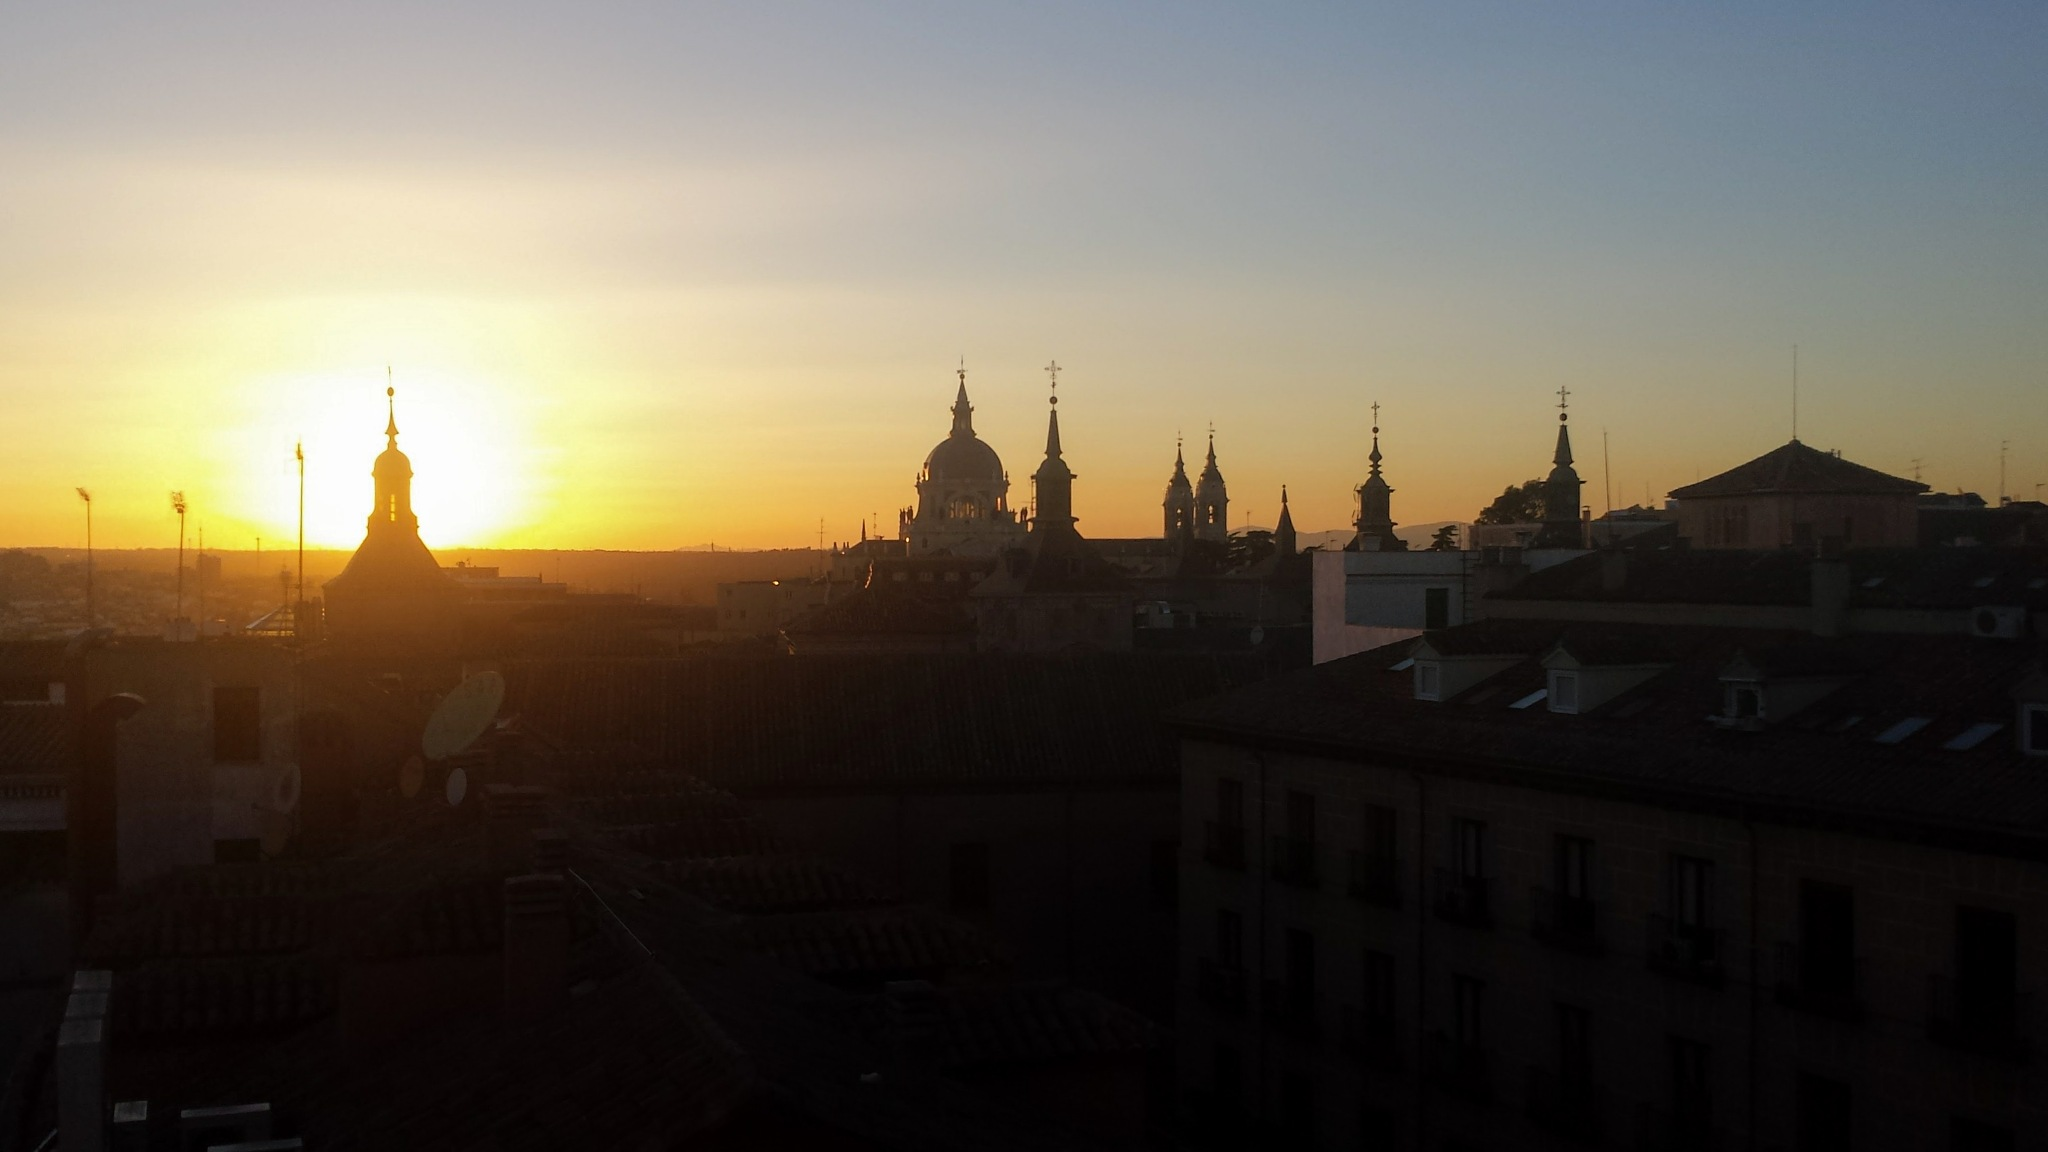 Madrid sunset by JMDuque